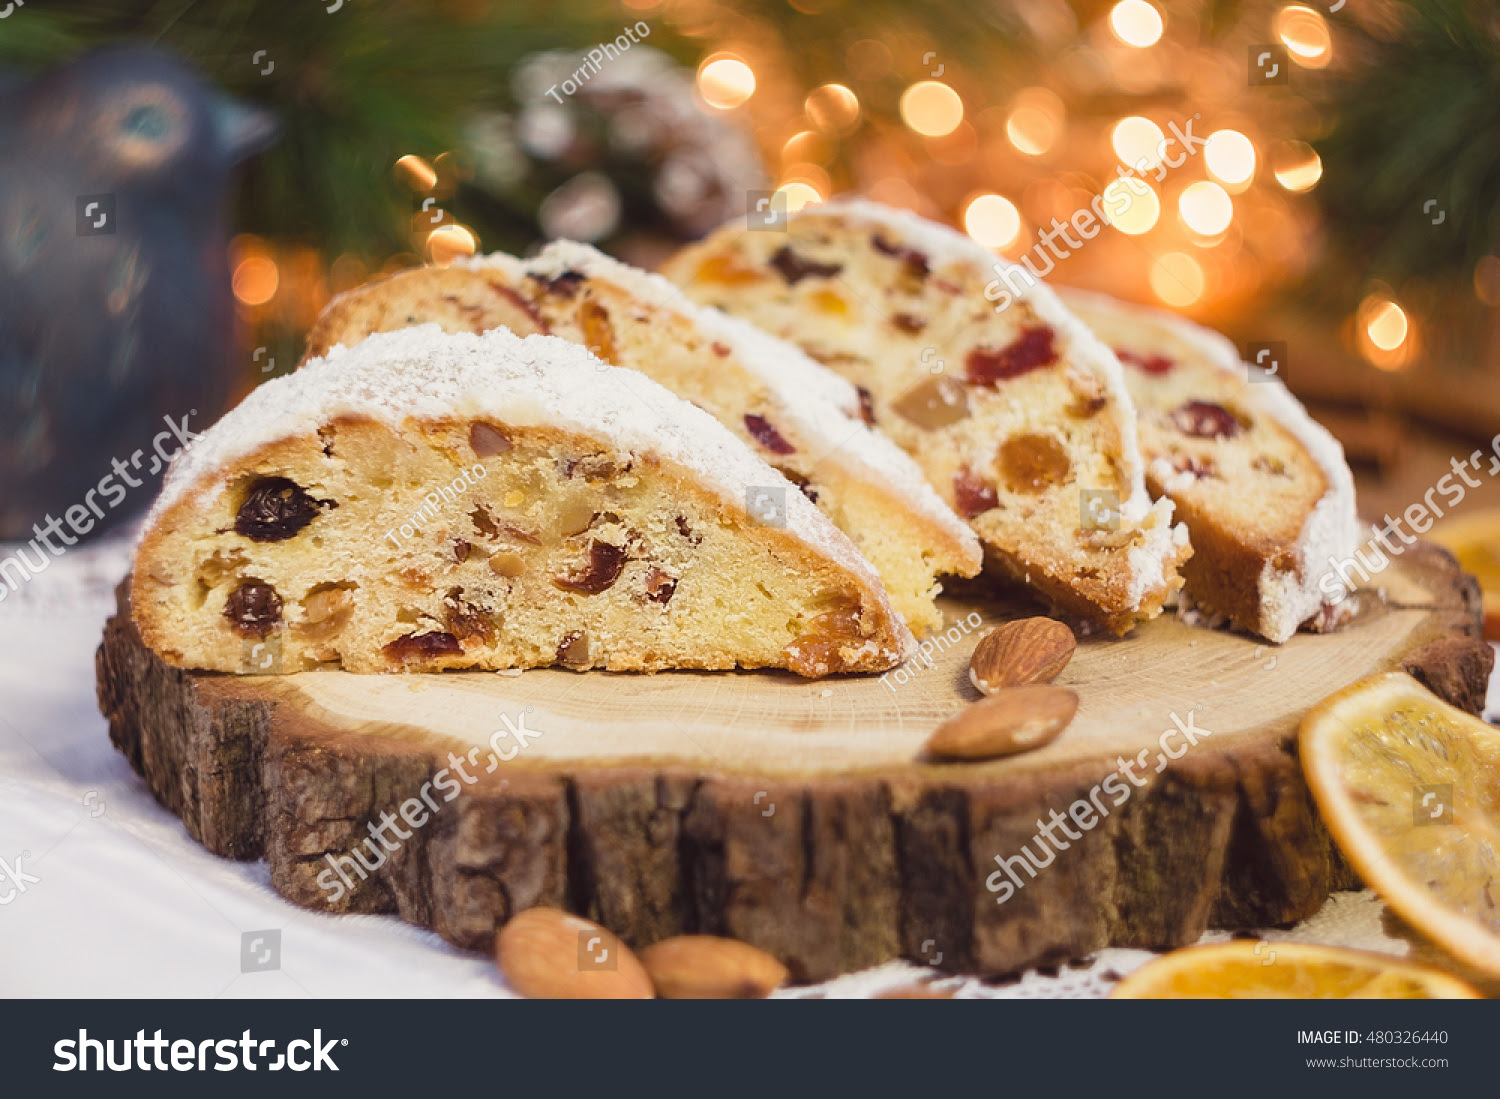 http://www.shutterstock.com/pic-480326440/stock-photo-slices-of-stollen-on-festive-rustic-wooden-background-with-cchristmas-light-bokeh-shallow-focus.html